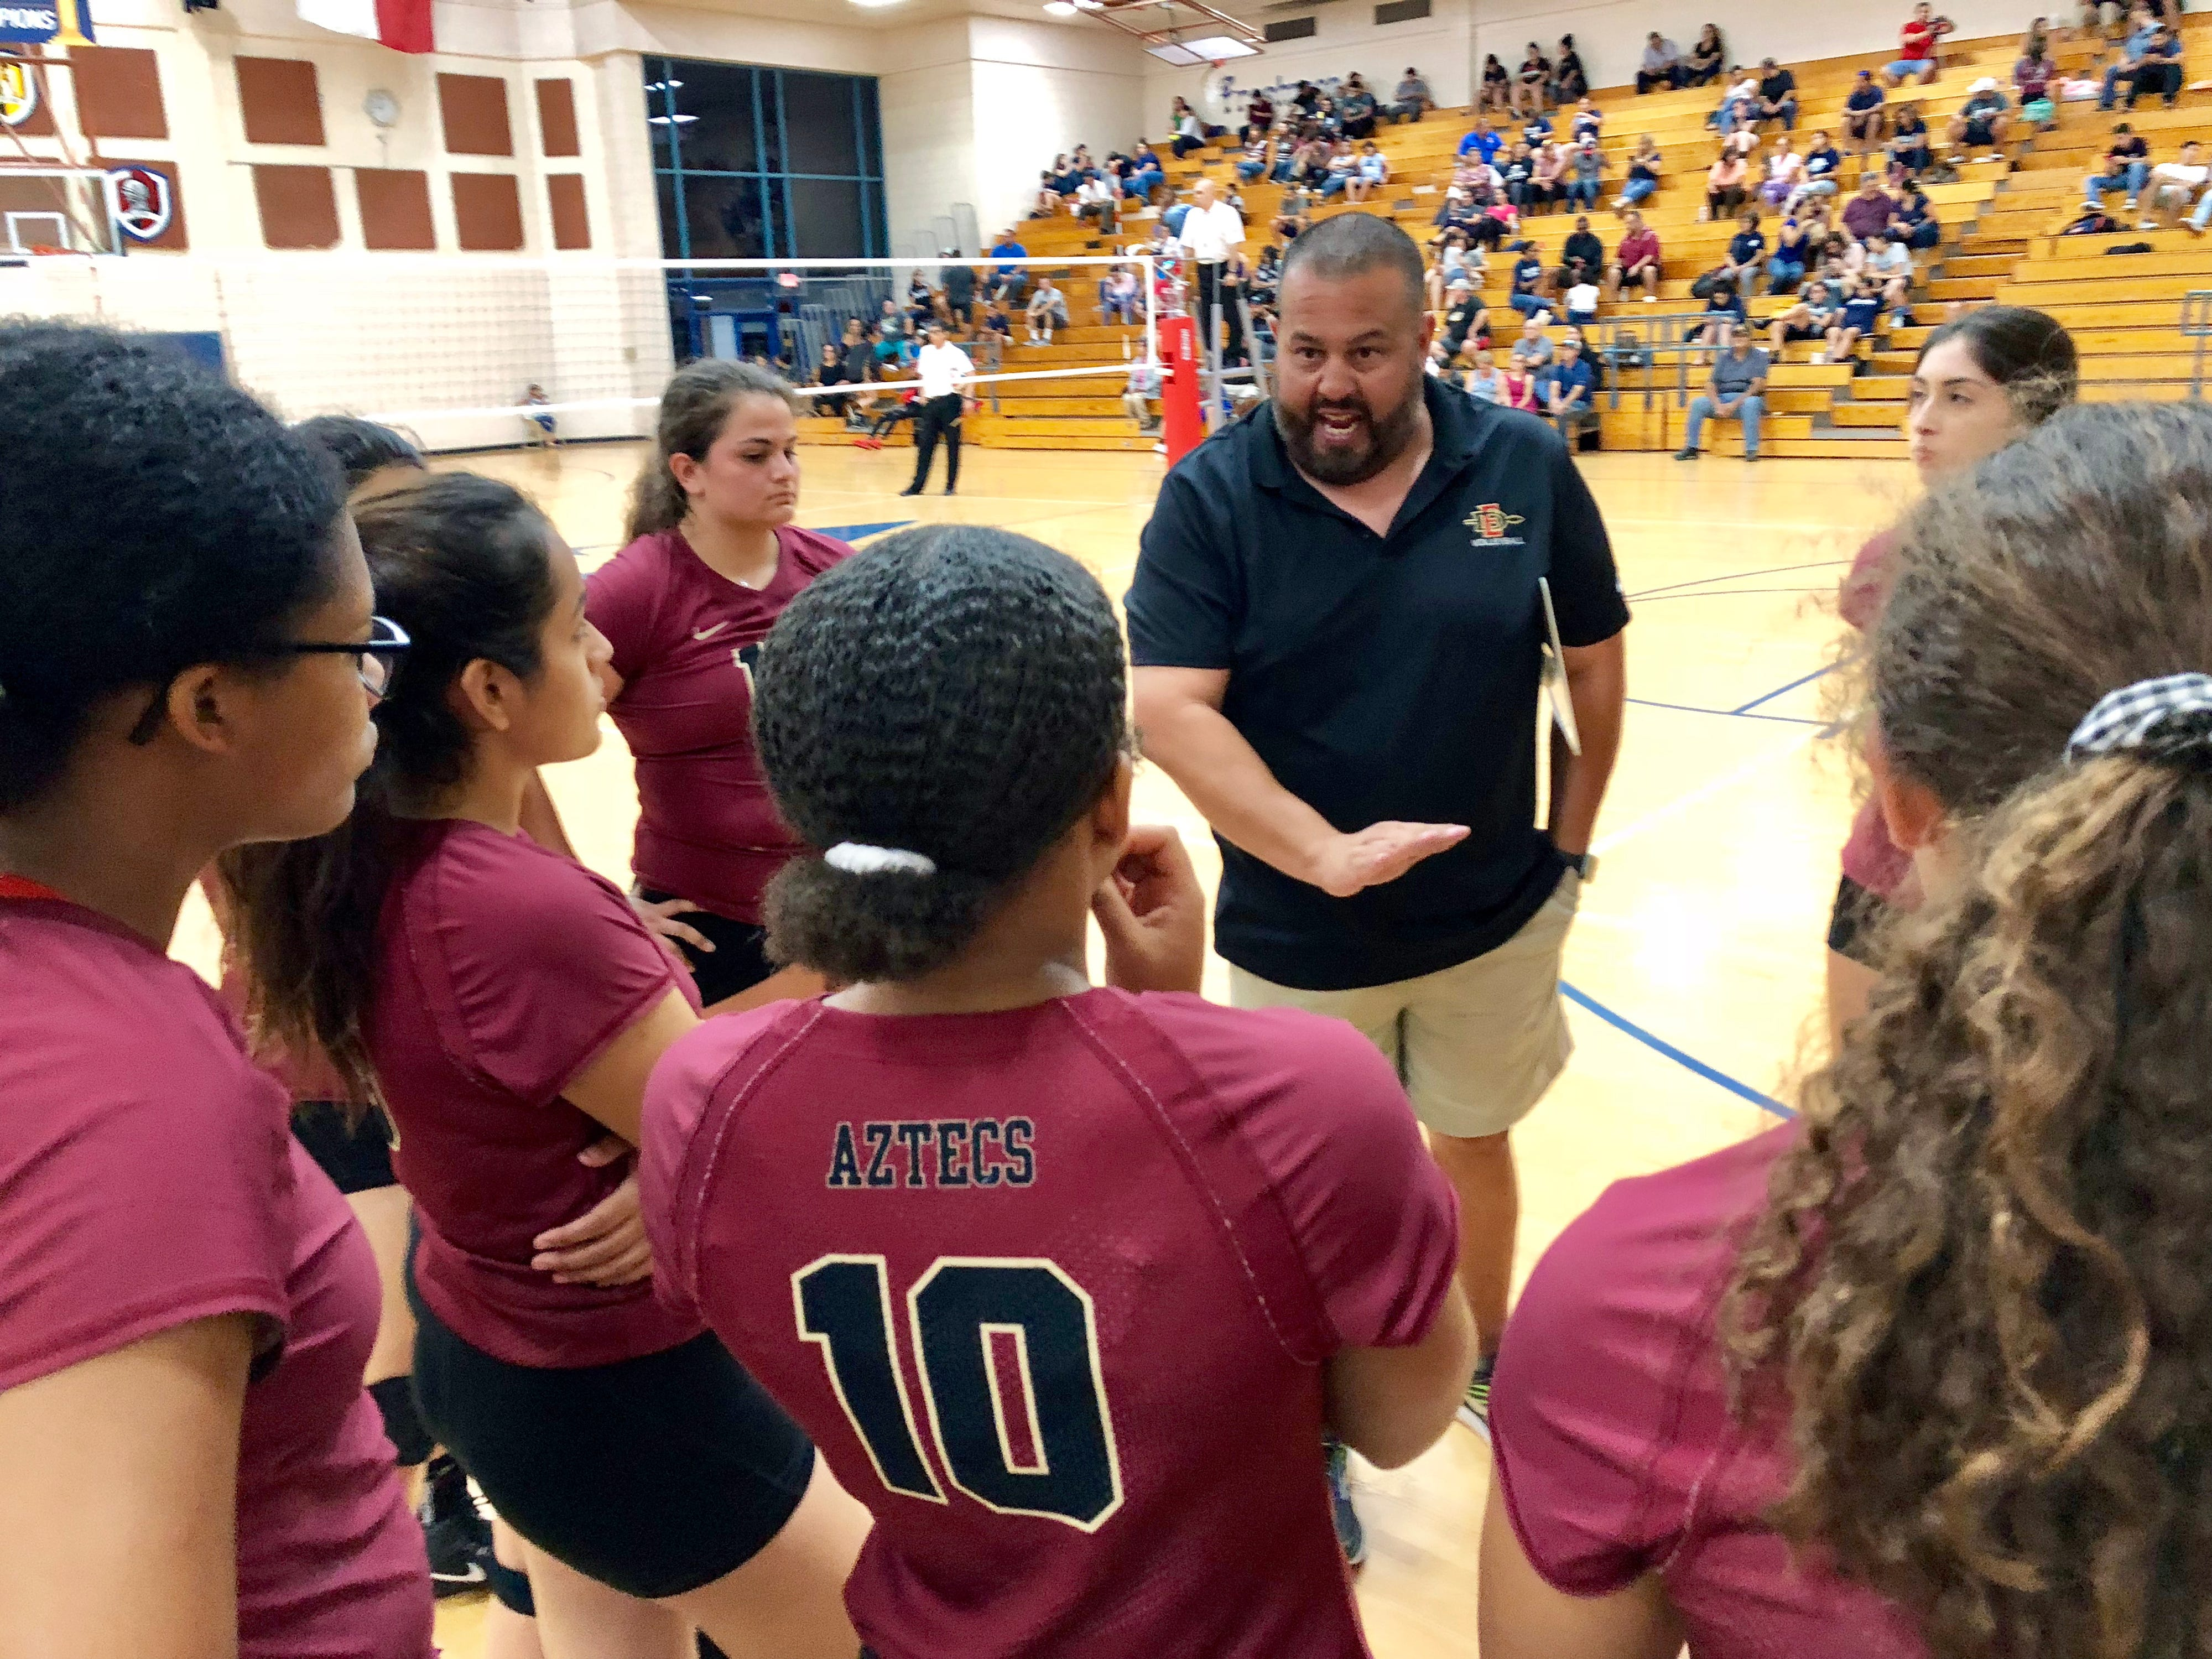 El Dorado coach Roel De Anda fires up his team after they won a close first set against Del Valle on Tuesday night at Del Valle. El Dorado went on to win the match in three sets.